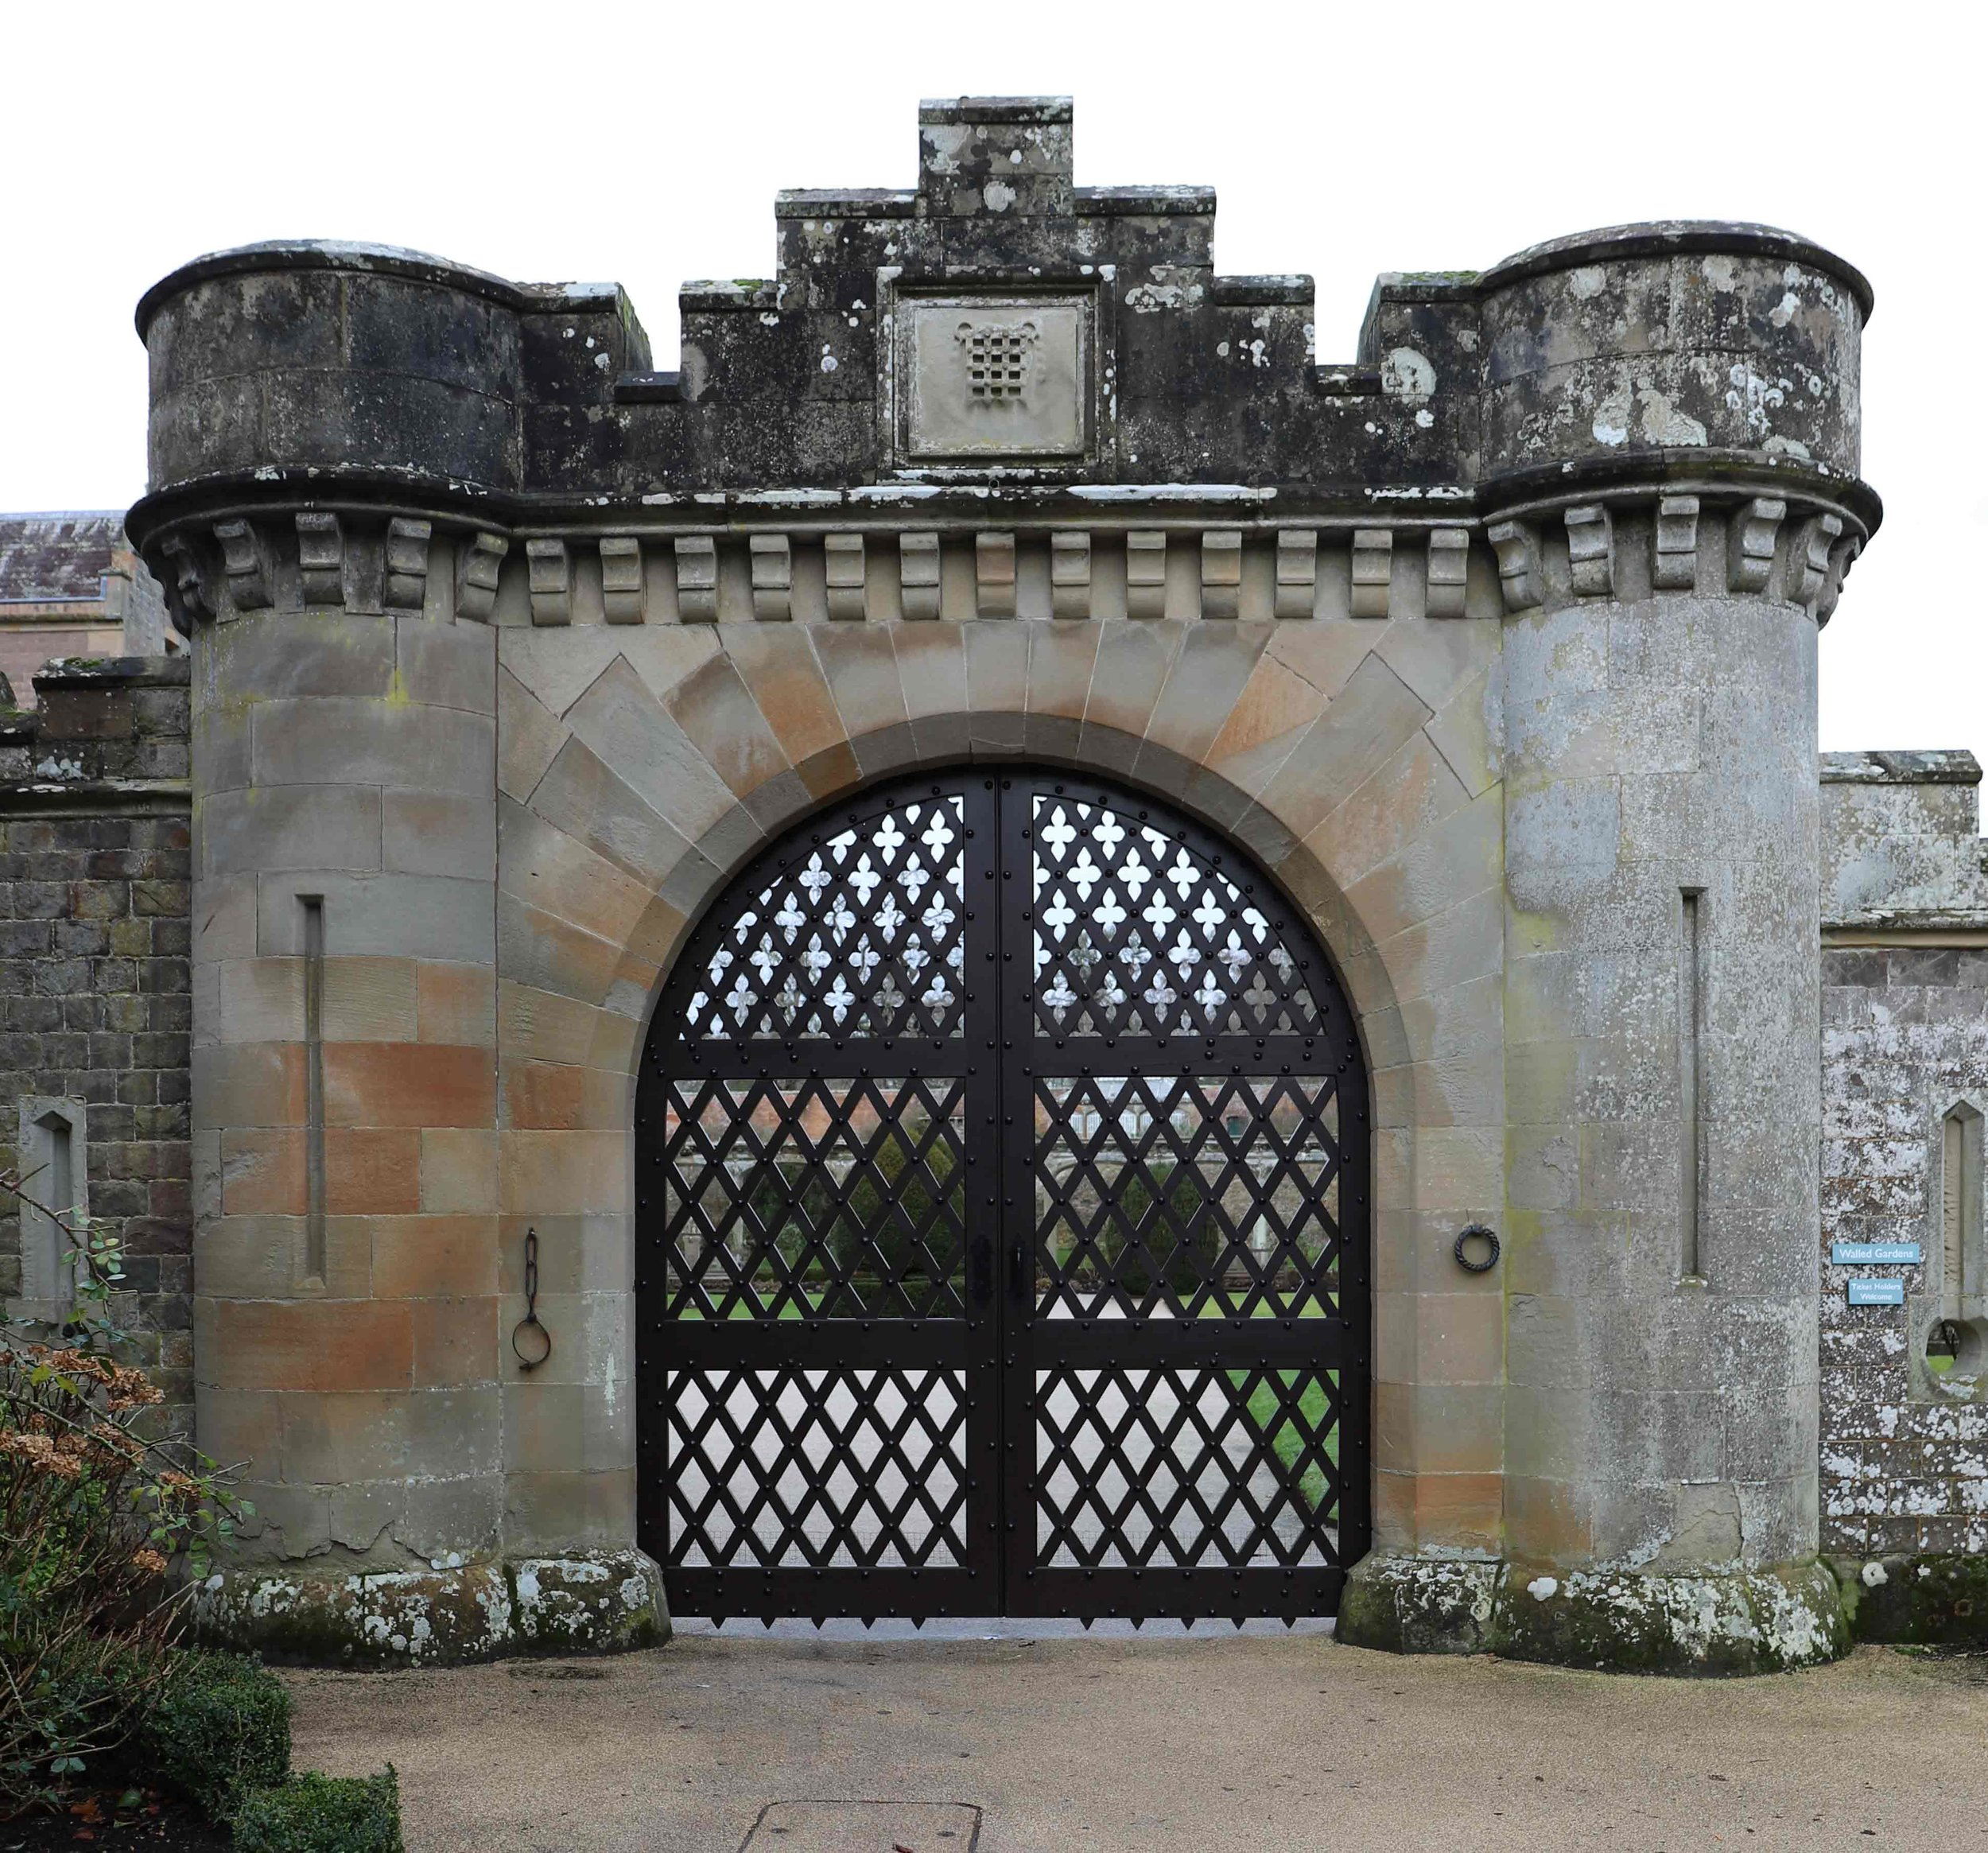 The conserved gates back in place at Abbotsford House.